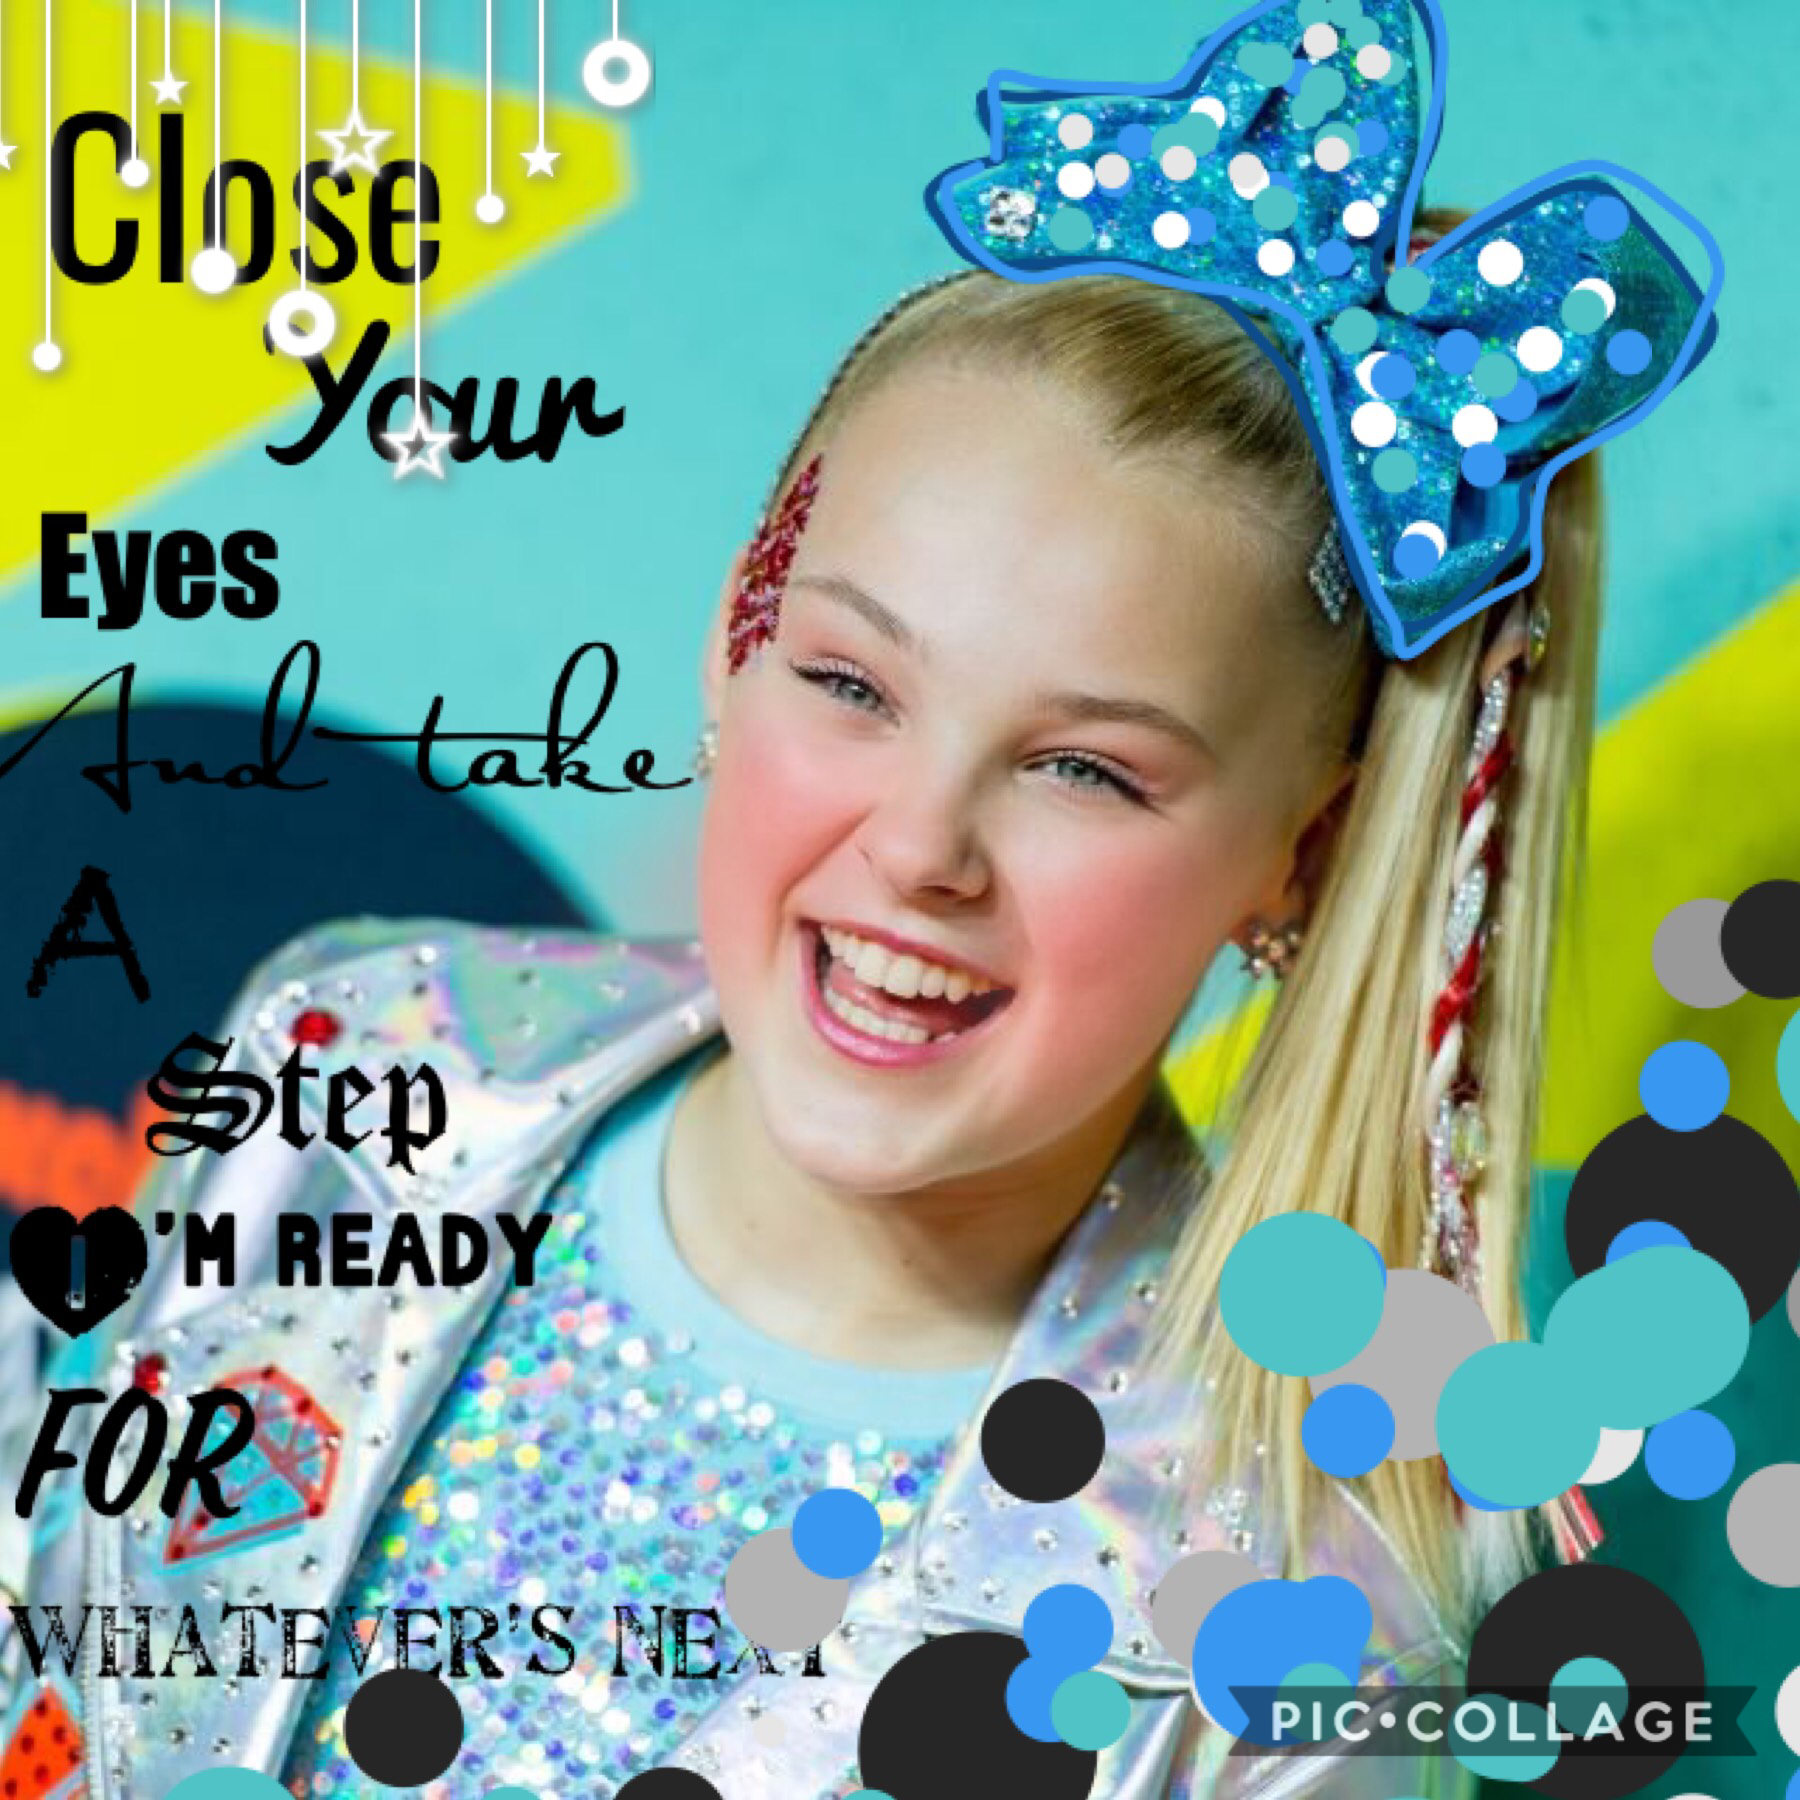 Tap🧡  QOTD: have you watched JoJo Siwa's only getting better music video yet? AOTD: YESSSSS!!!!!!!!! I LOVE IT SOOOO MUCH!!!!!!!!!!!💜😁 This collage has a lyric from JoJo Siwa's new song!